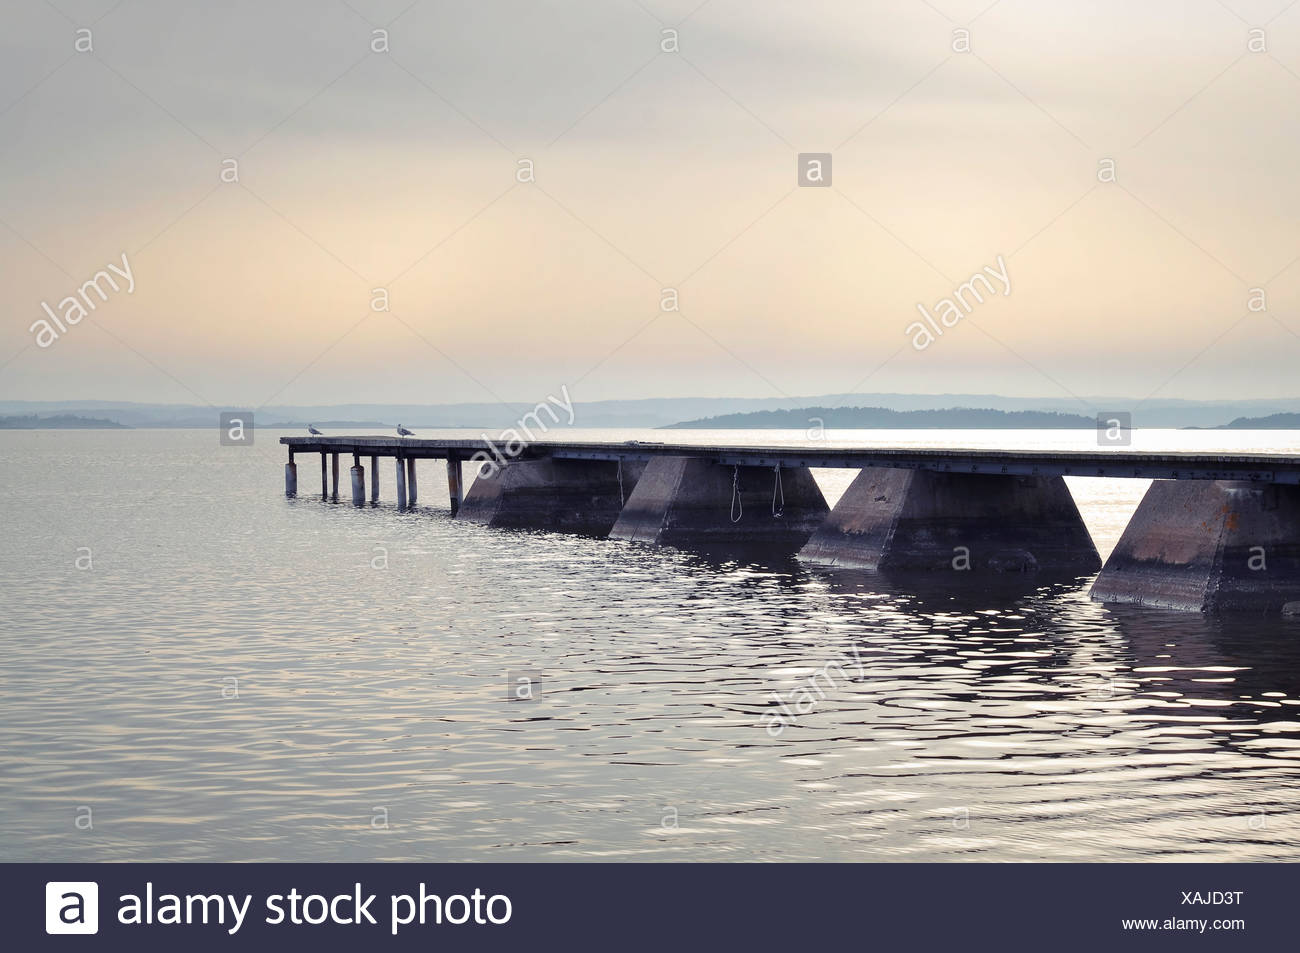 Idyllic view of jetty in lake - Stock Image